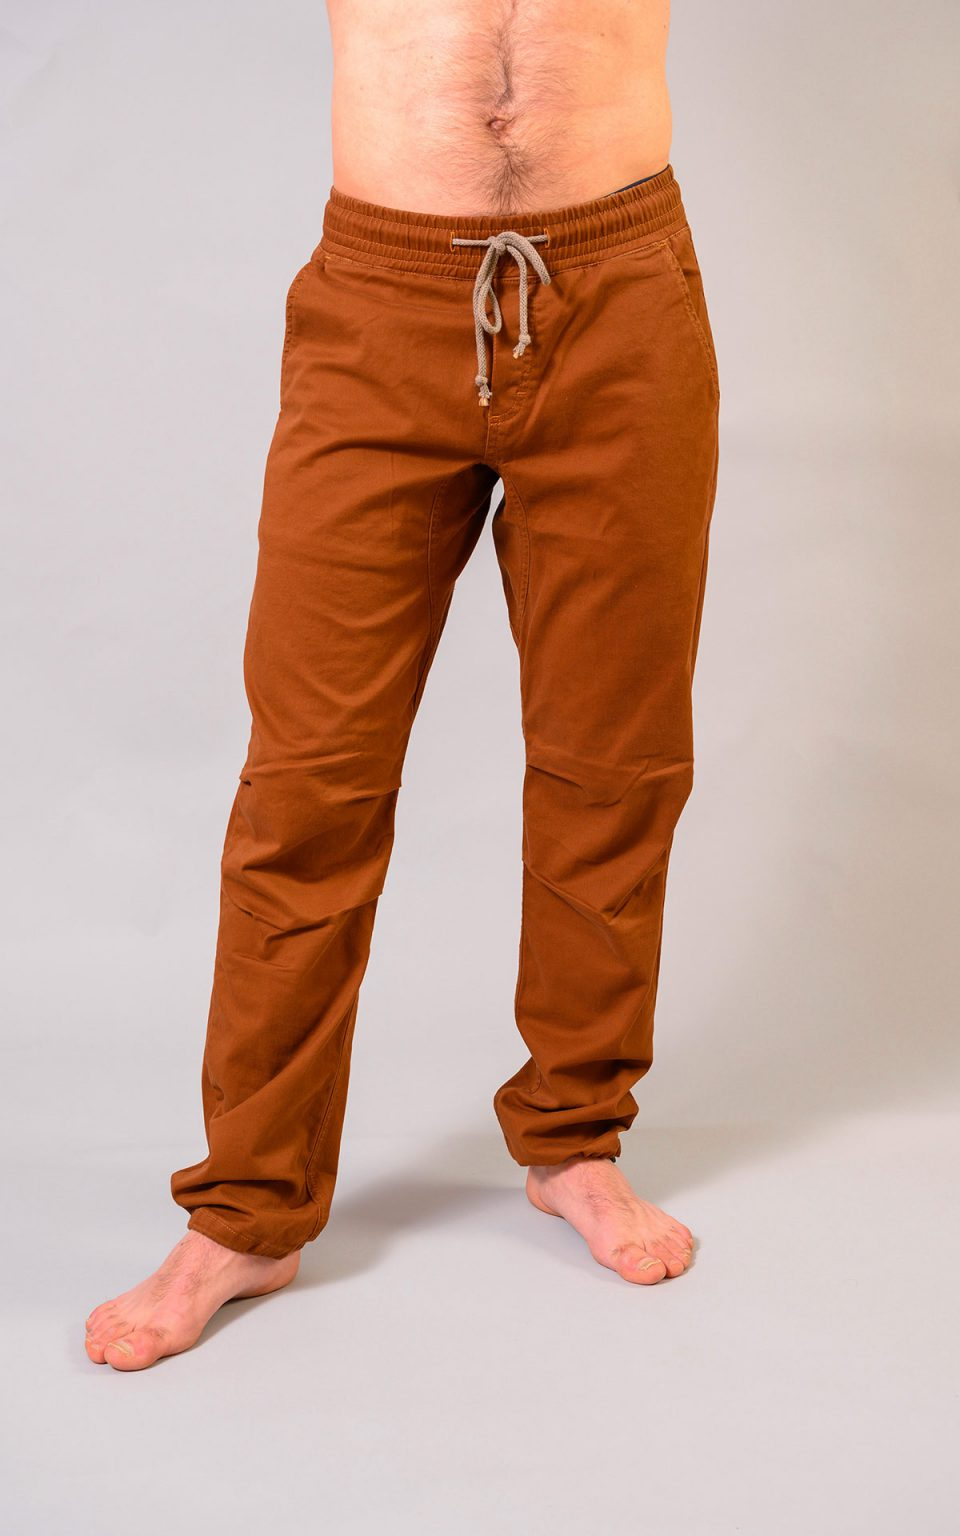 Cotton Classic pants - choclate brown